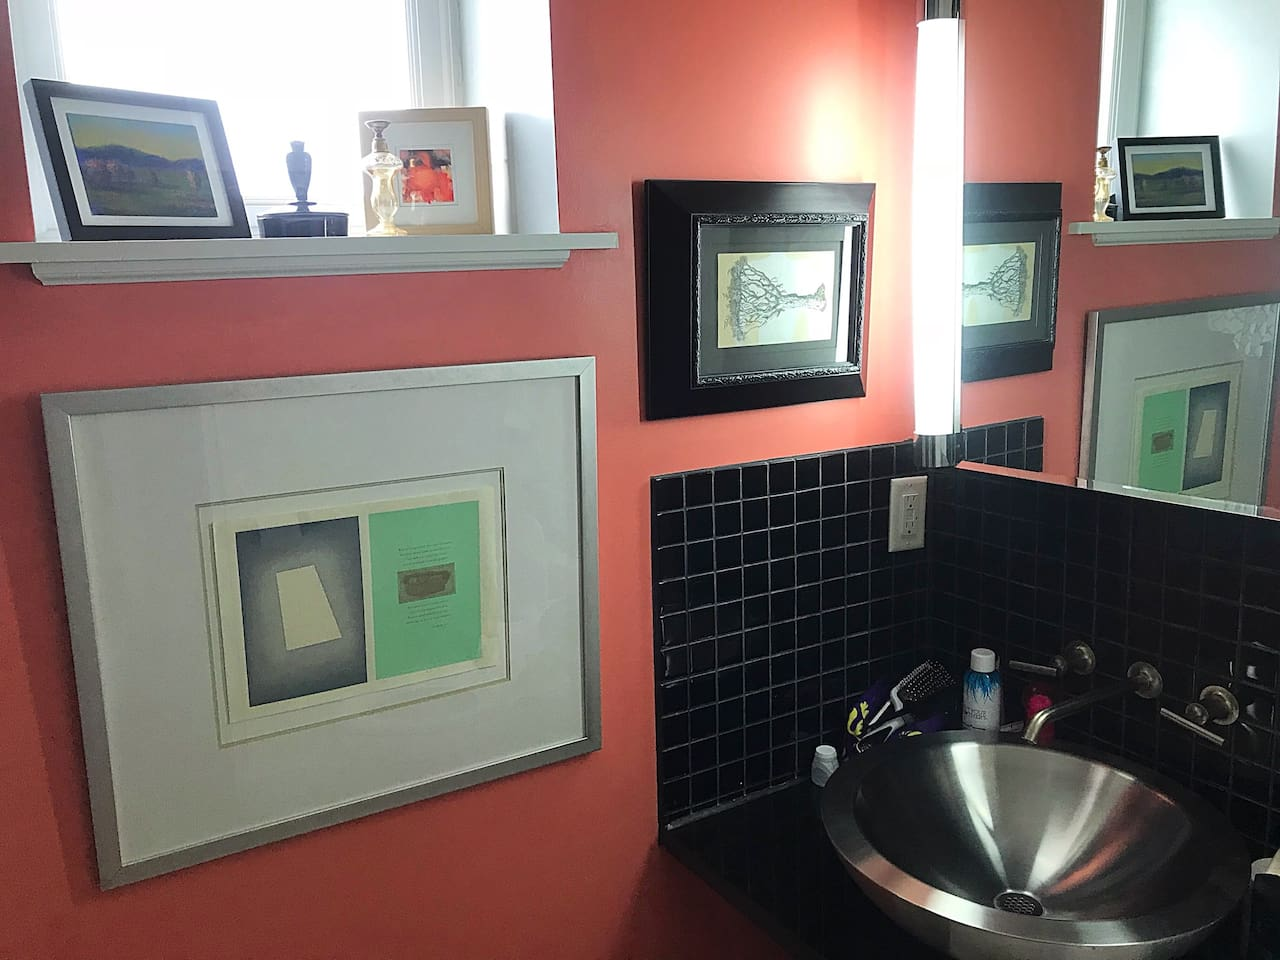 Contemporary stainless steel bowl sink.